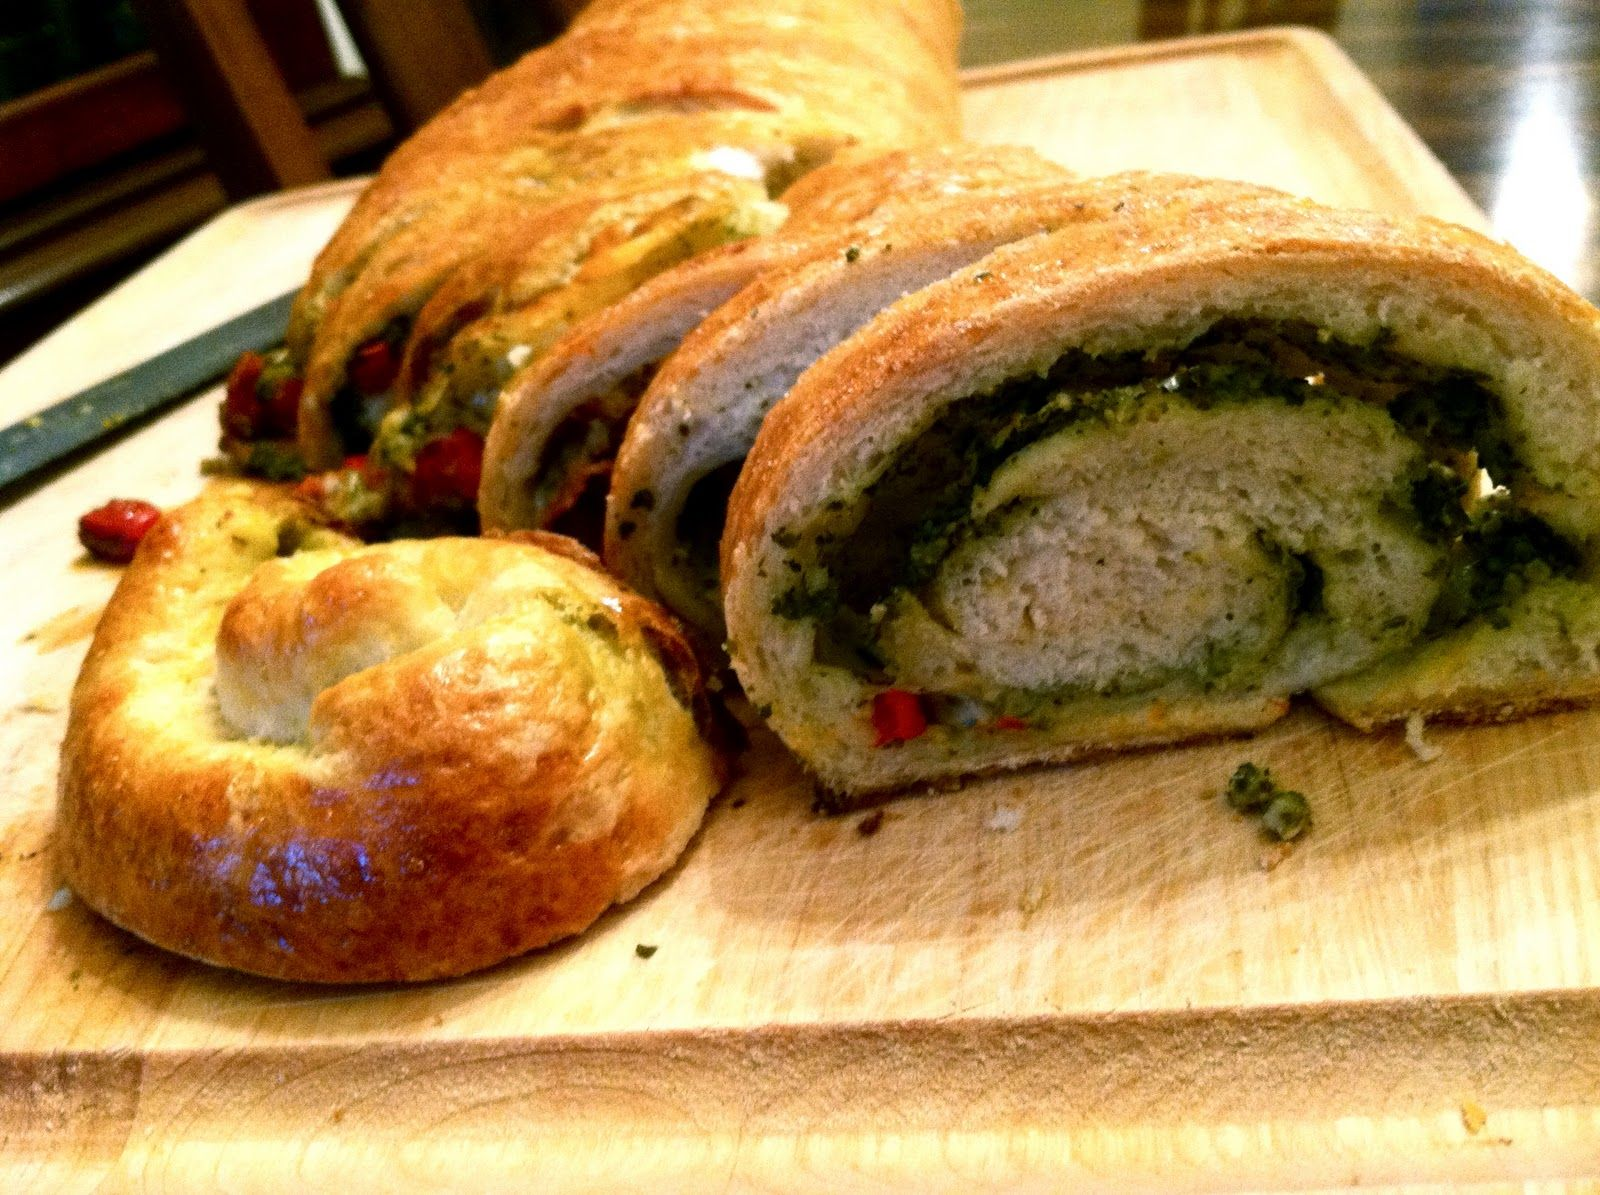 Learning to see: Pepperoni, Provolone, and Pesto Stromboli